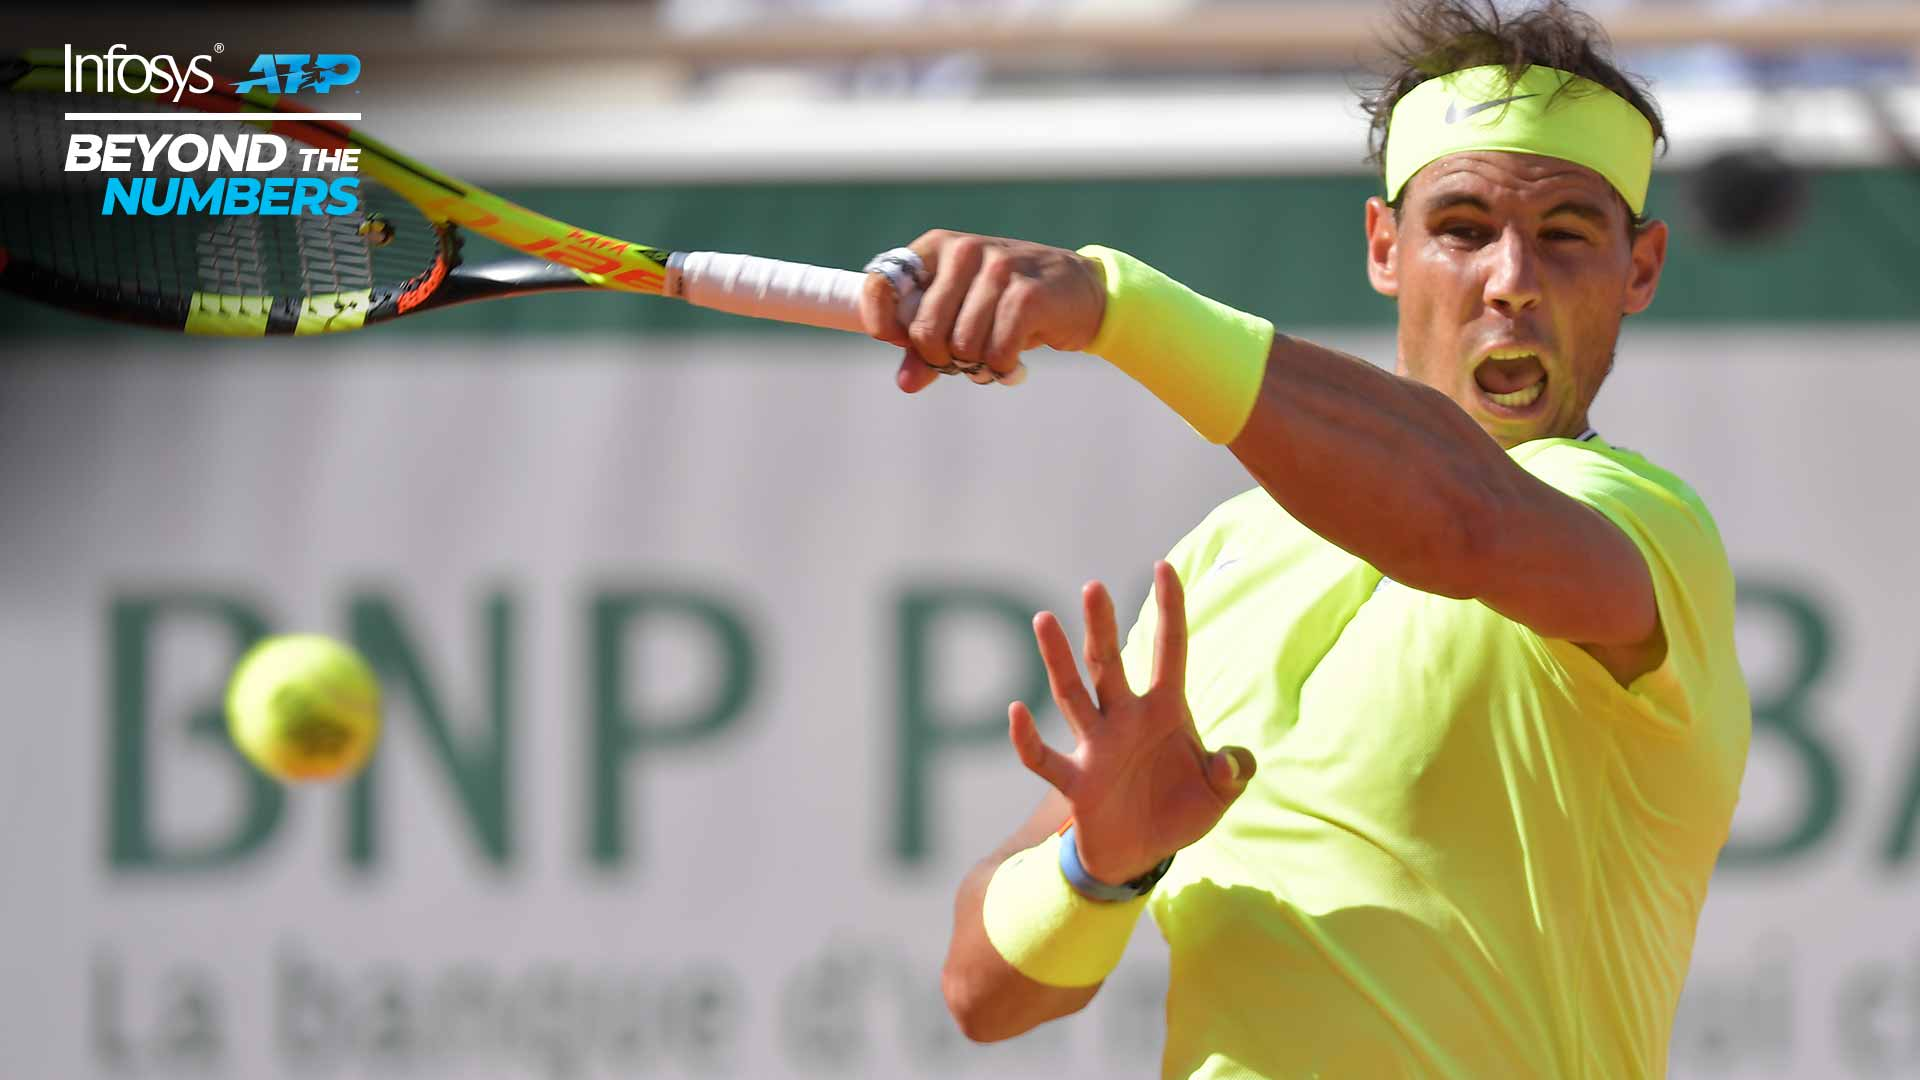 Infosys ATP Beyond The Numbers Rafael Nadal